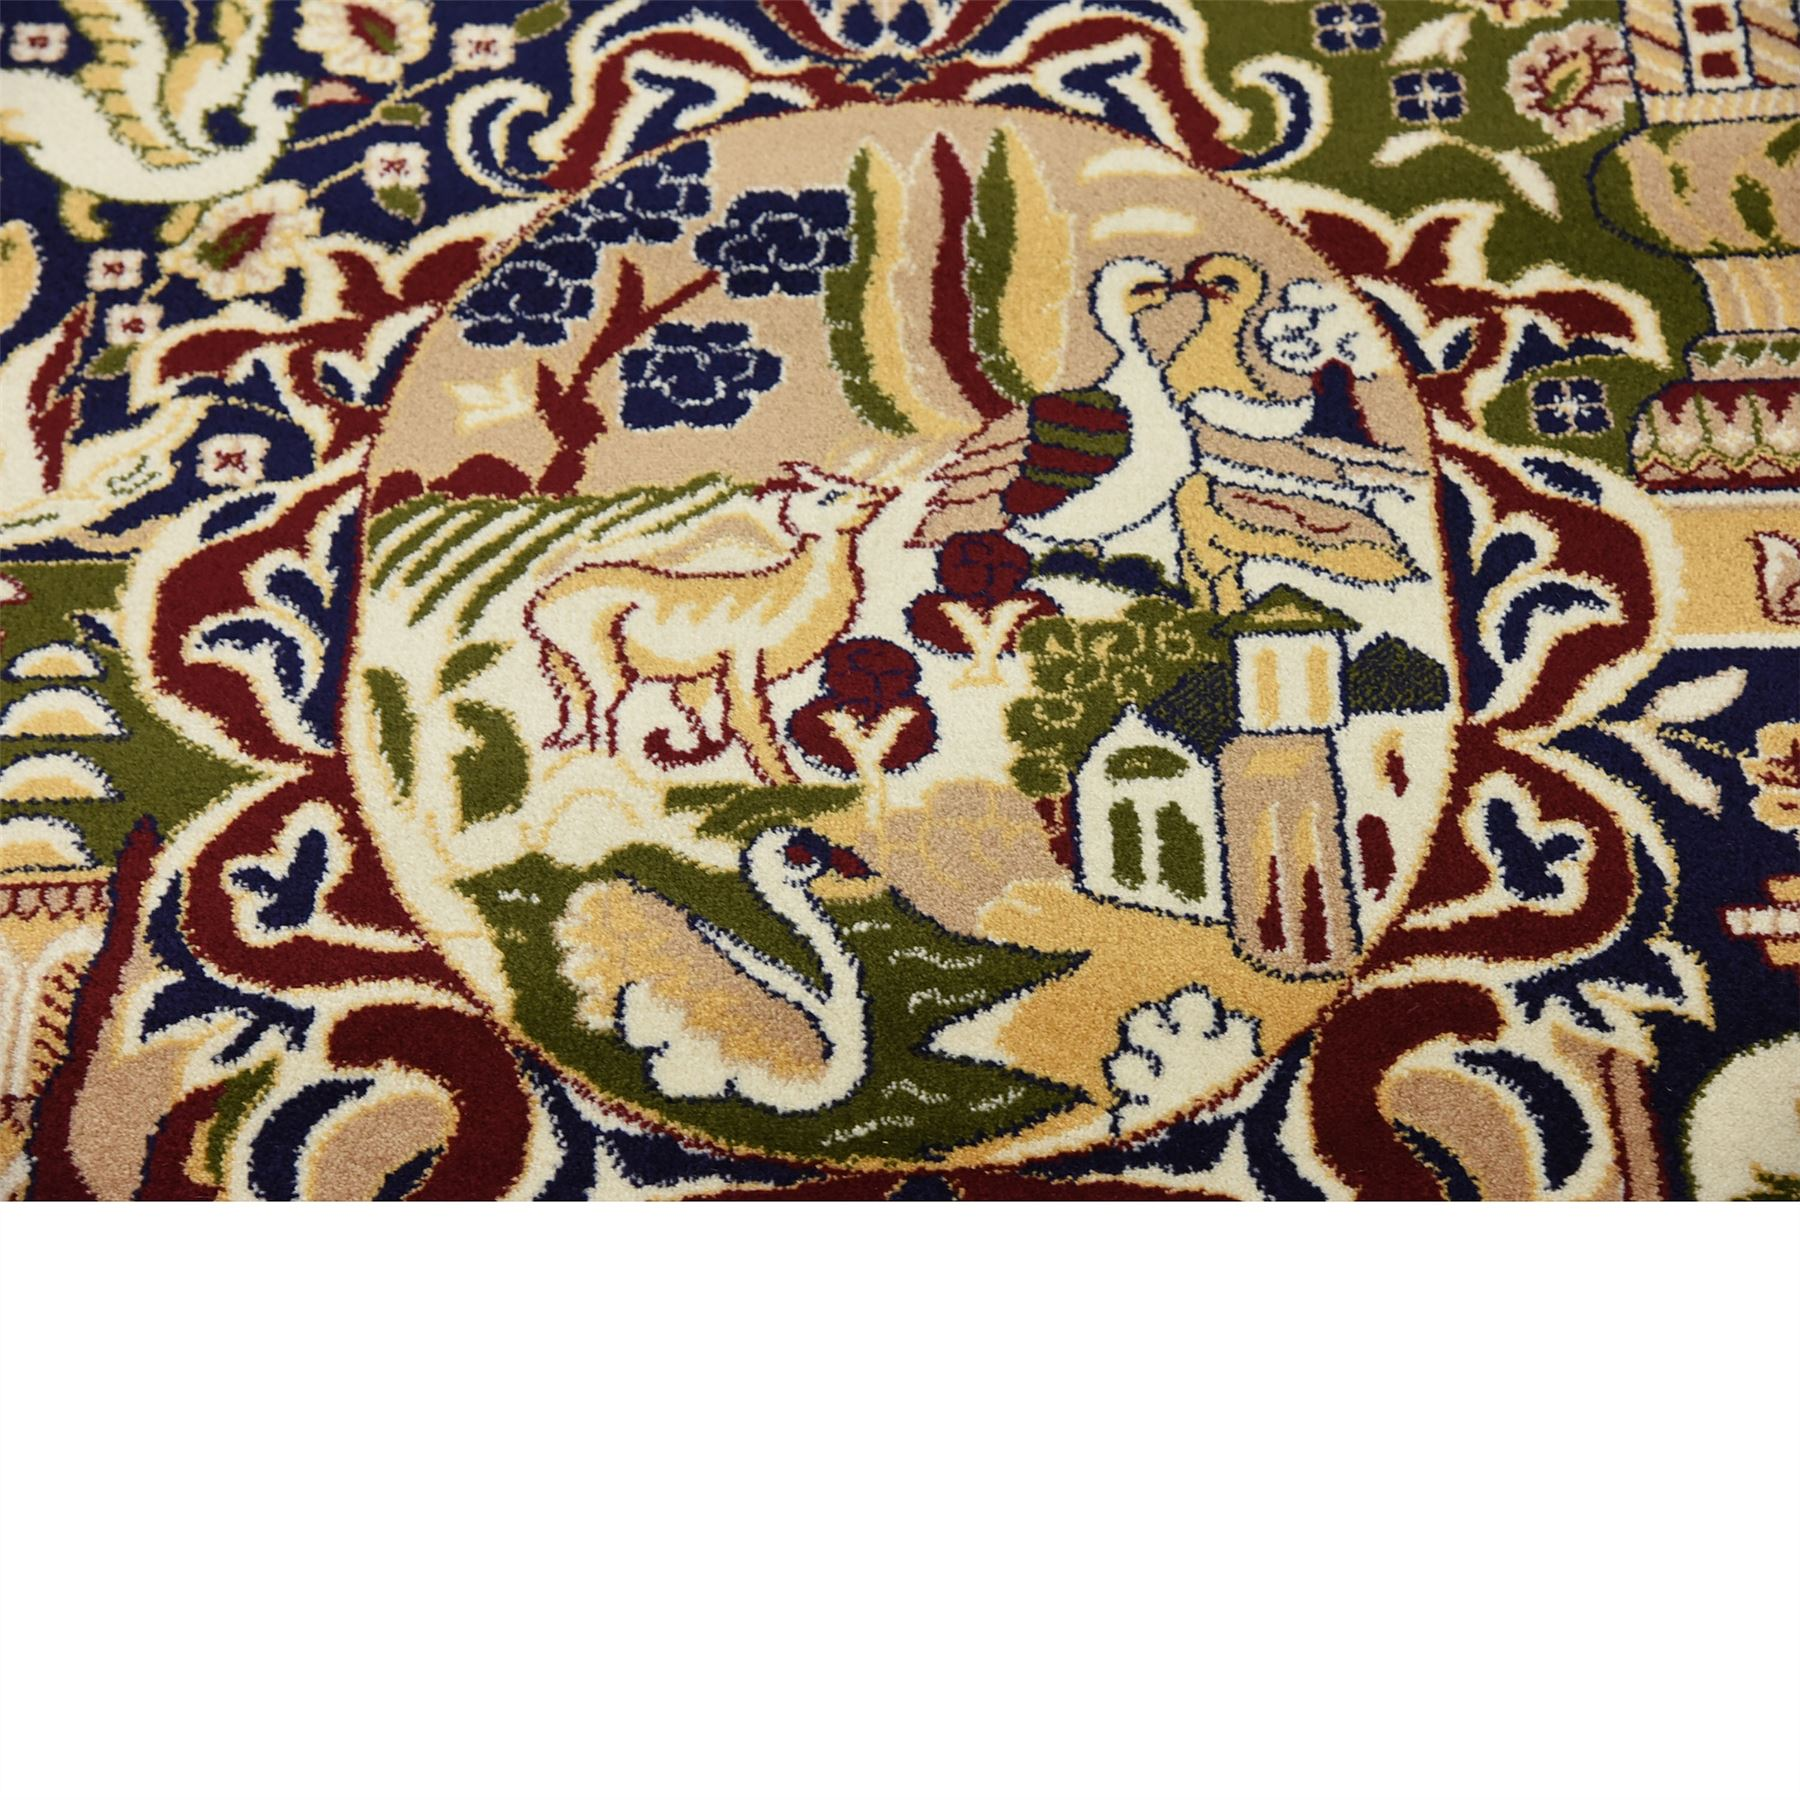 Oriental Rugs Out Of Style: Traditional Persian Style Kashmar Area Rug Animal Design